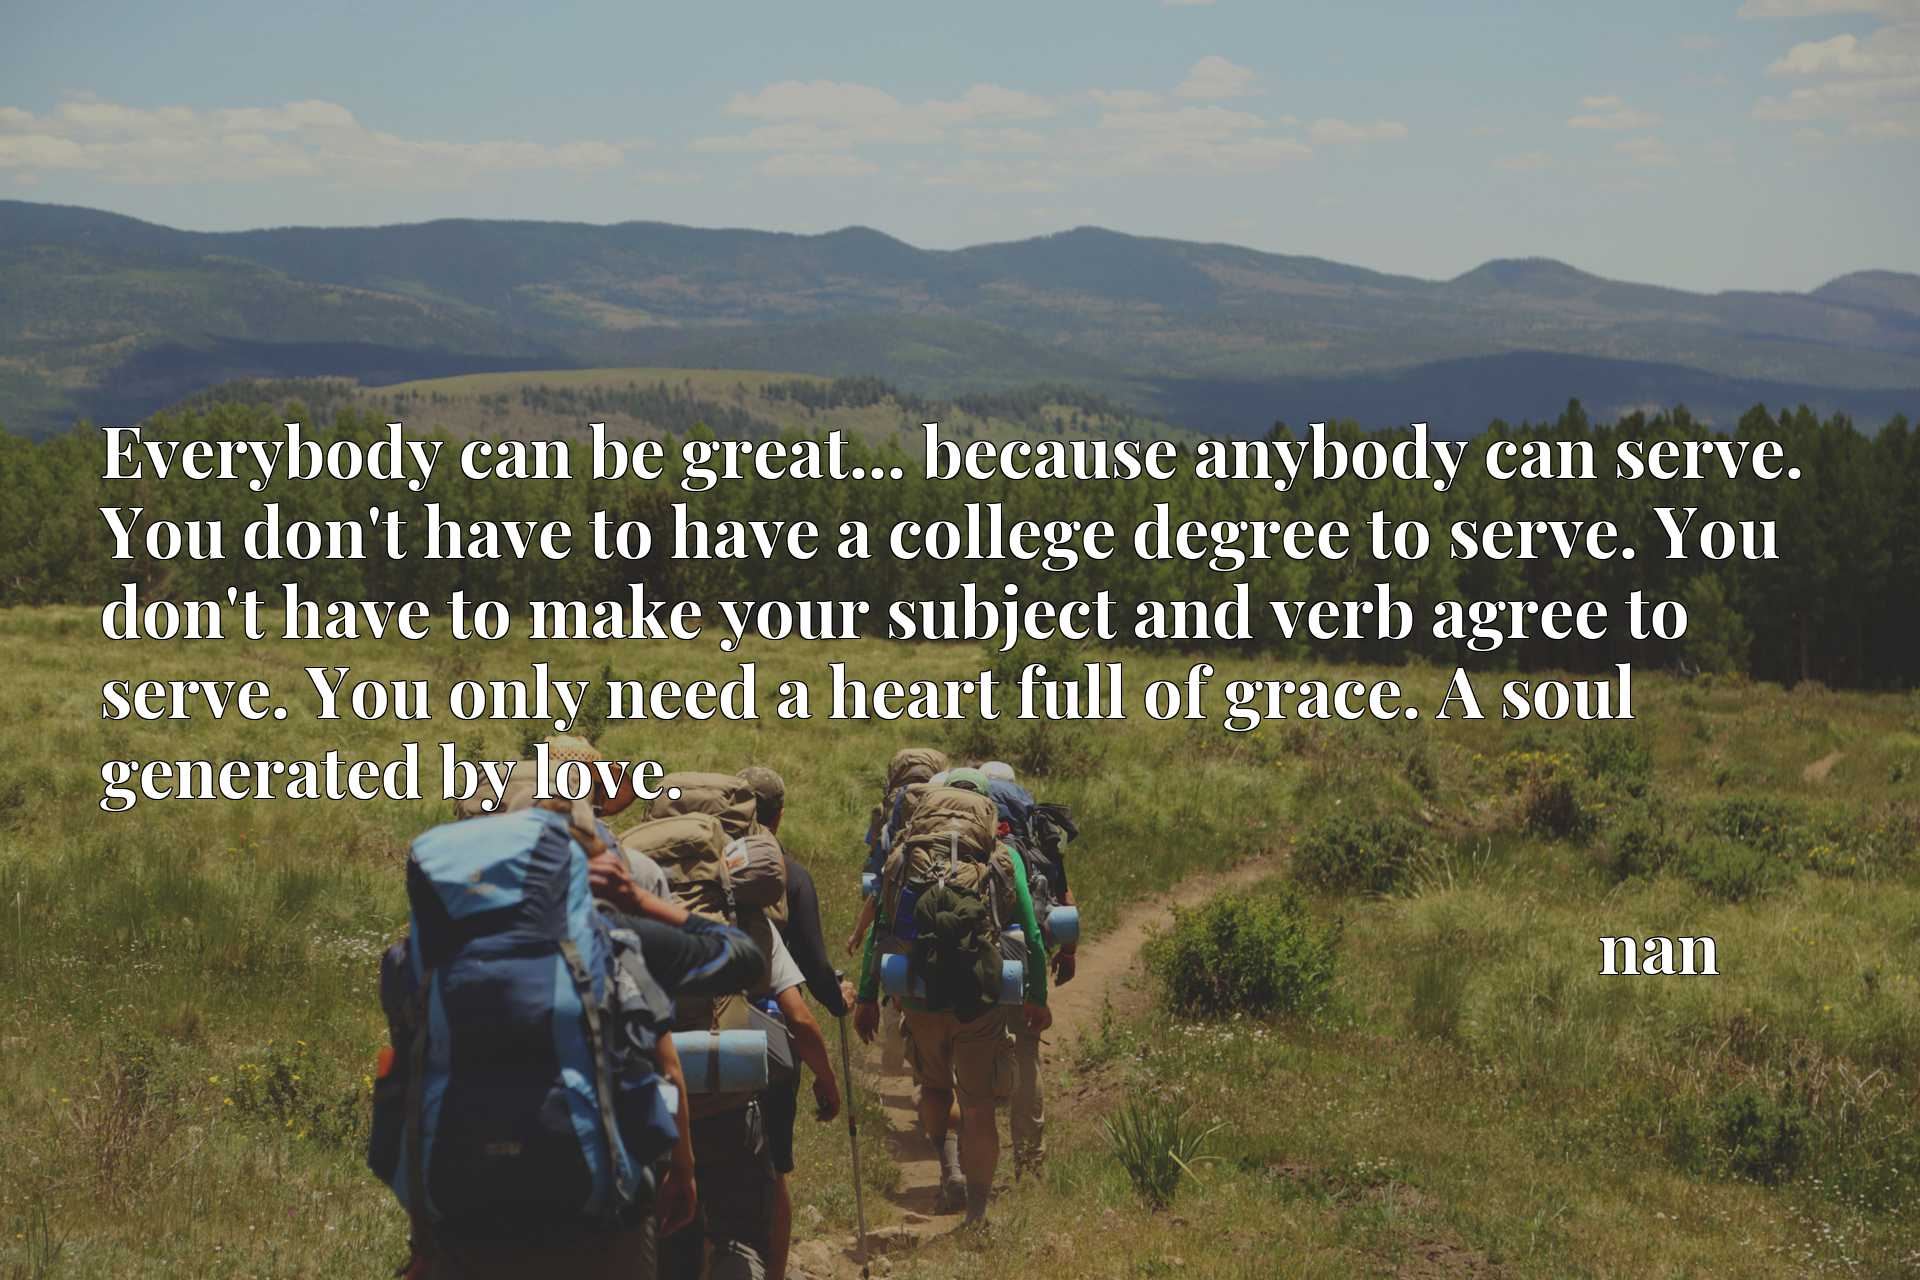 Everybody can be great... because anybody can serve. You don't have to have a college degree to serve. You don't have to make your subject and verb agree to serve. You only need a heart full of grace. A soul generated by love.